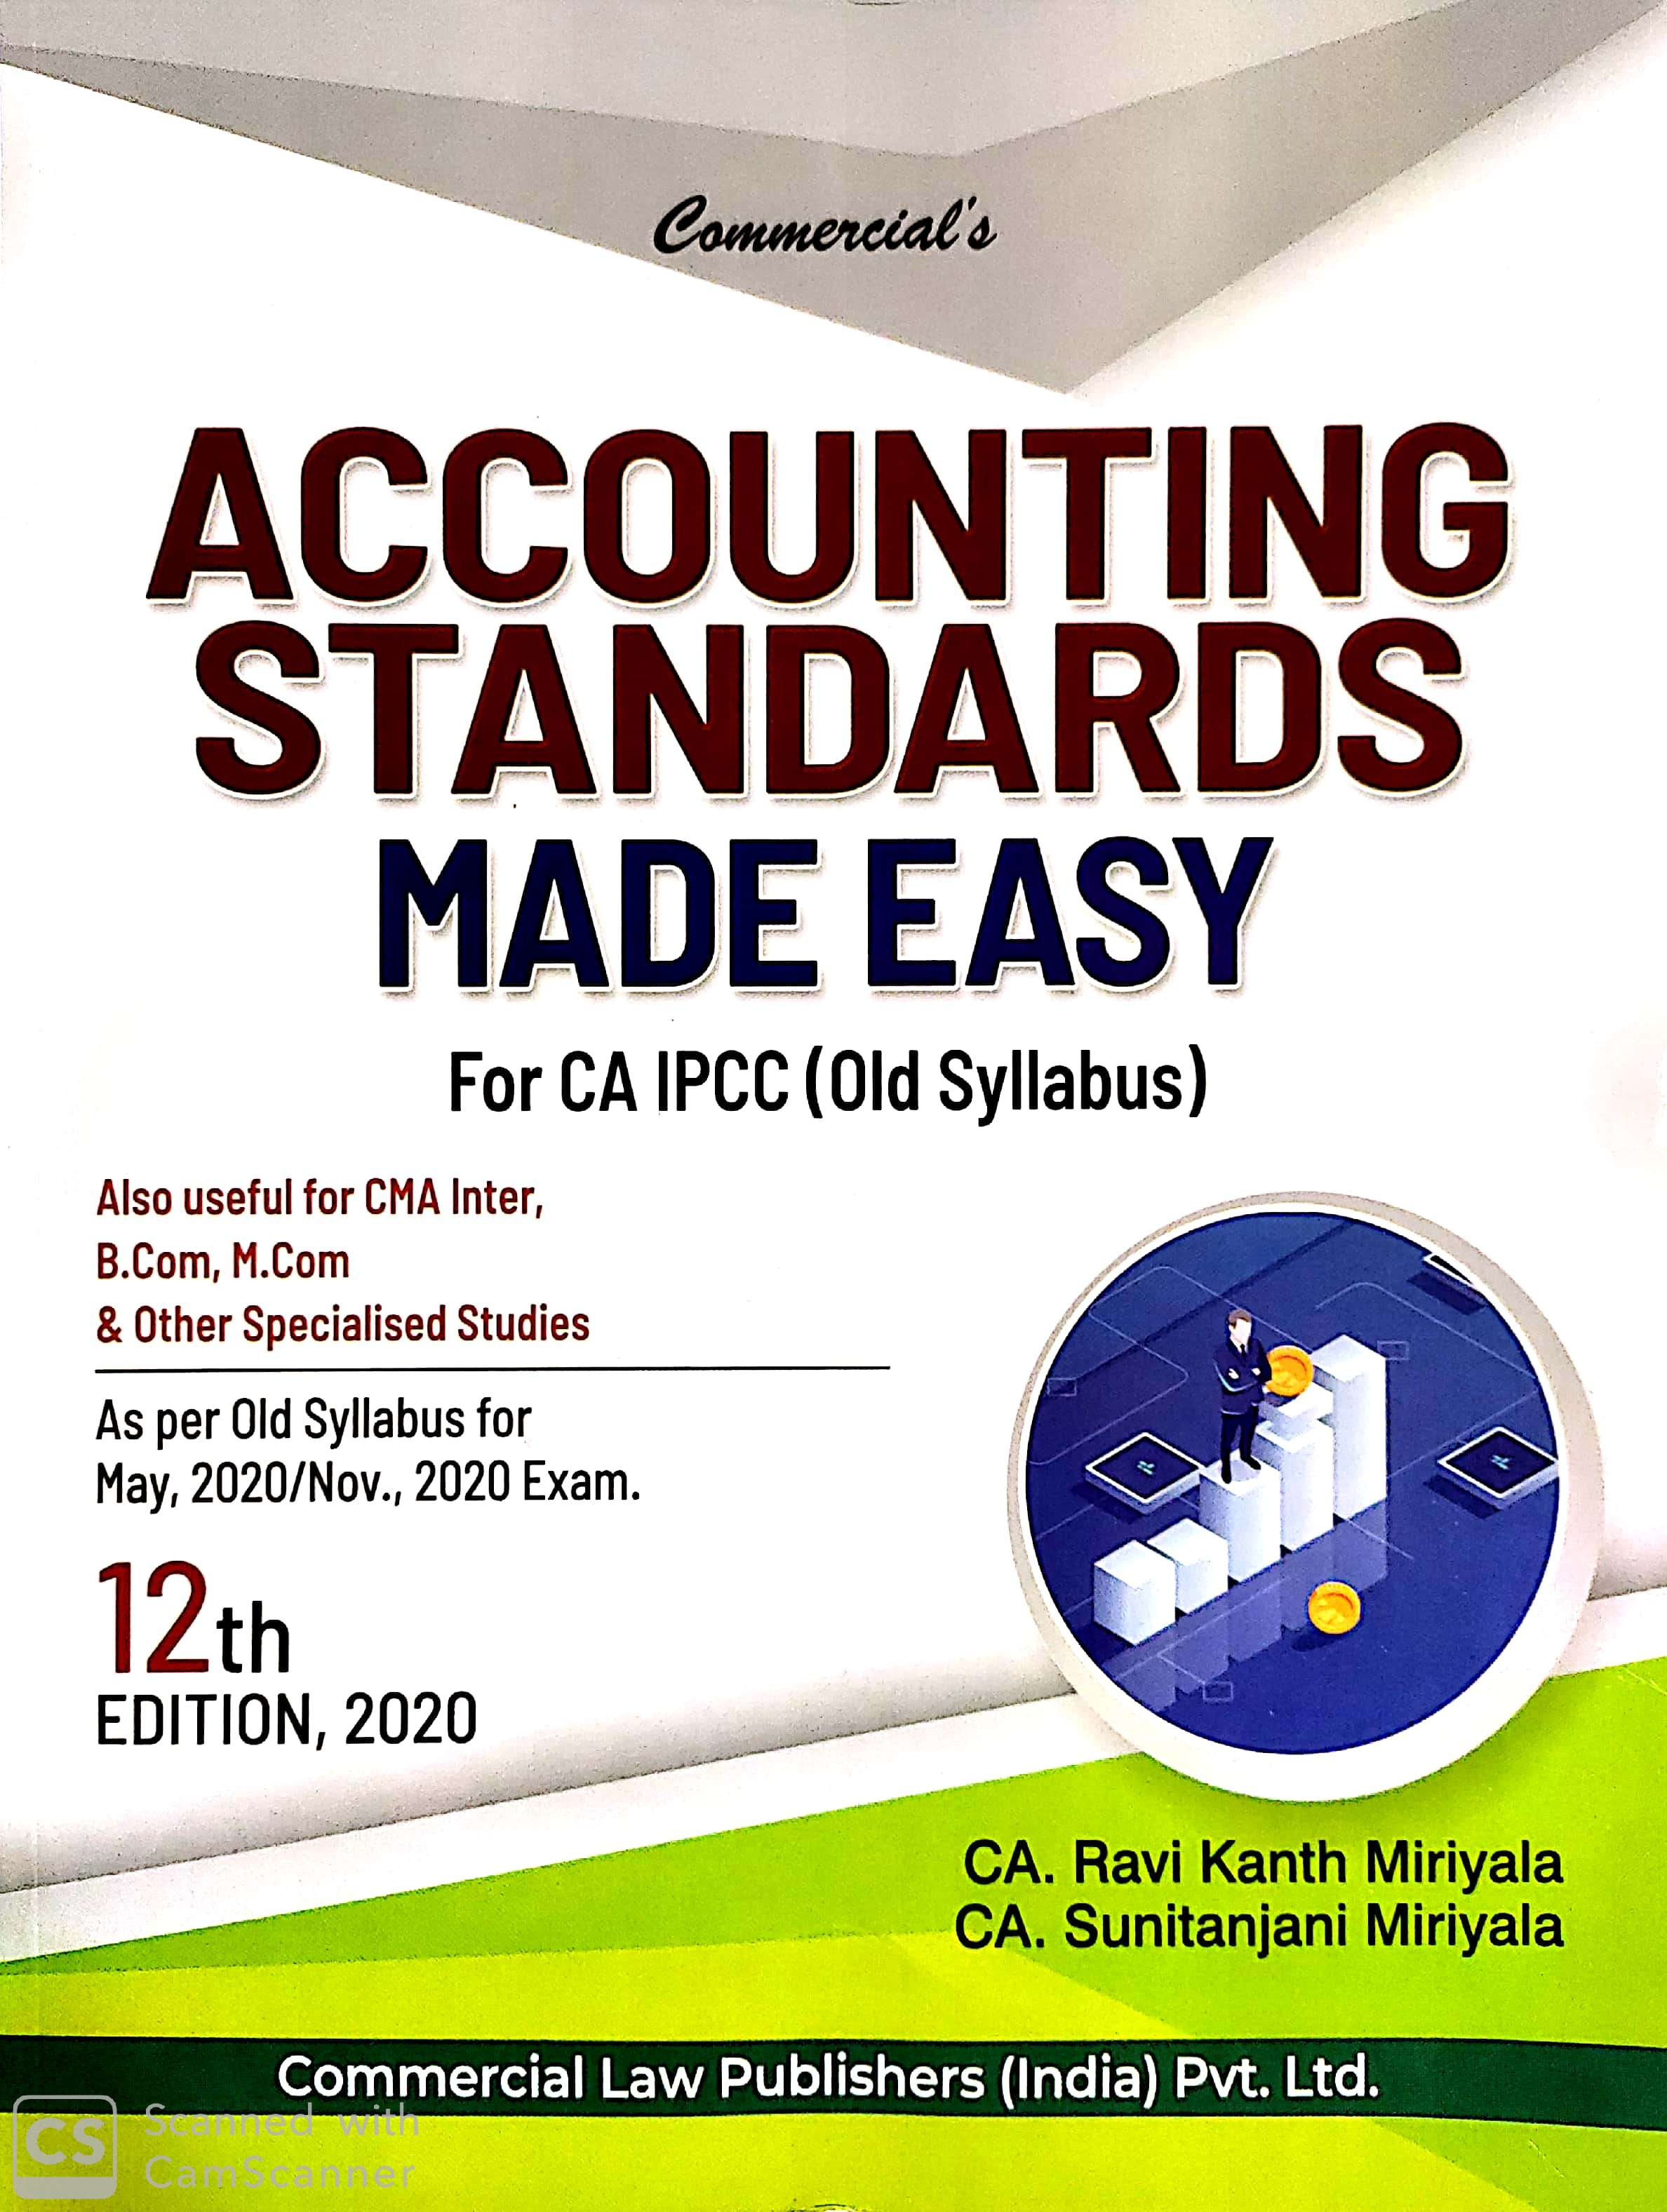 Commercial CA Final Old Syllabus Accounting Standards made Easy By Ravi kant miriyala, Applicable for May 2020 Exam